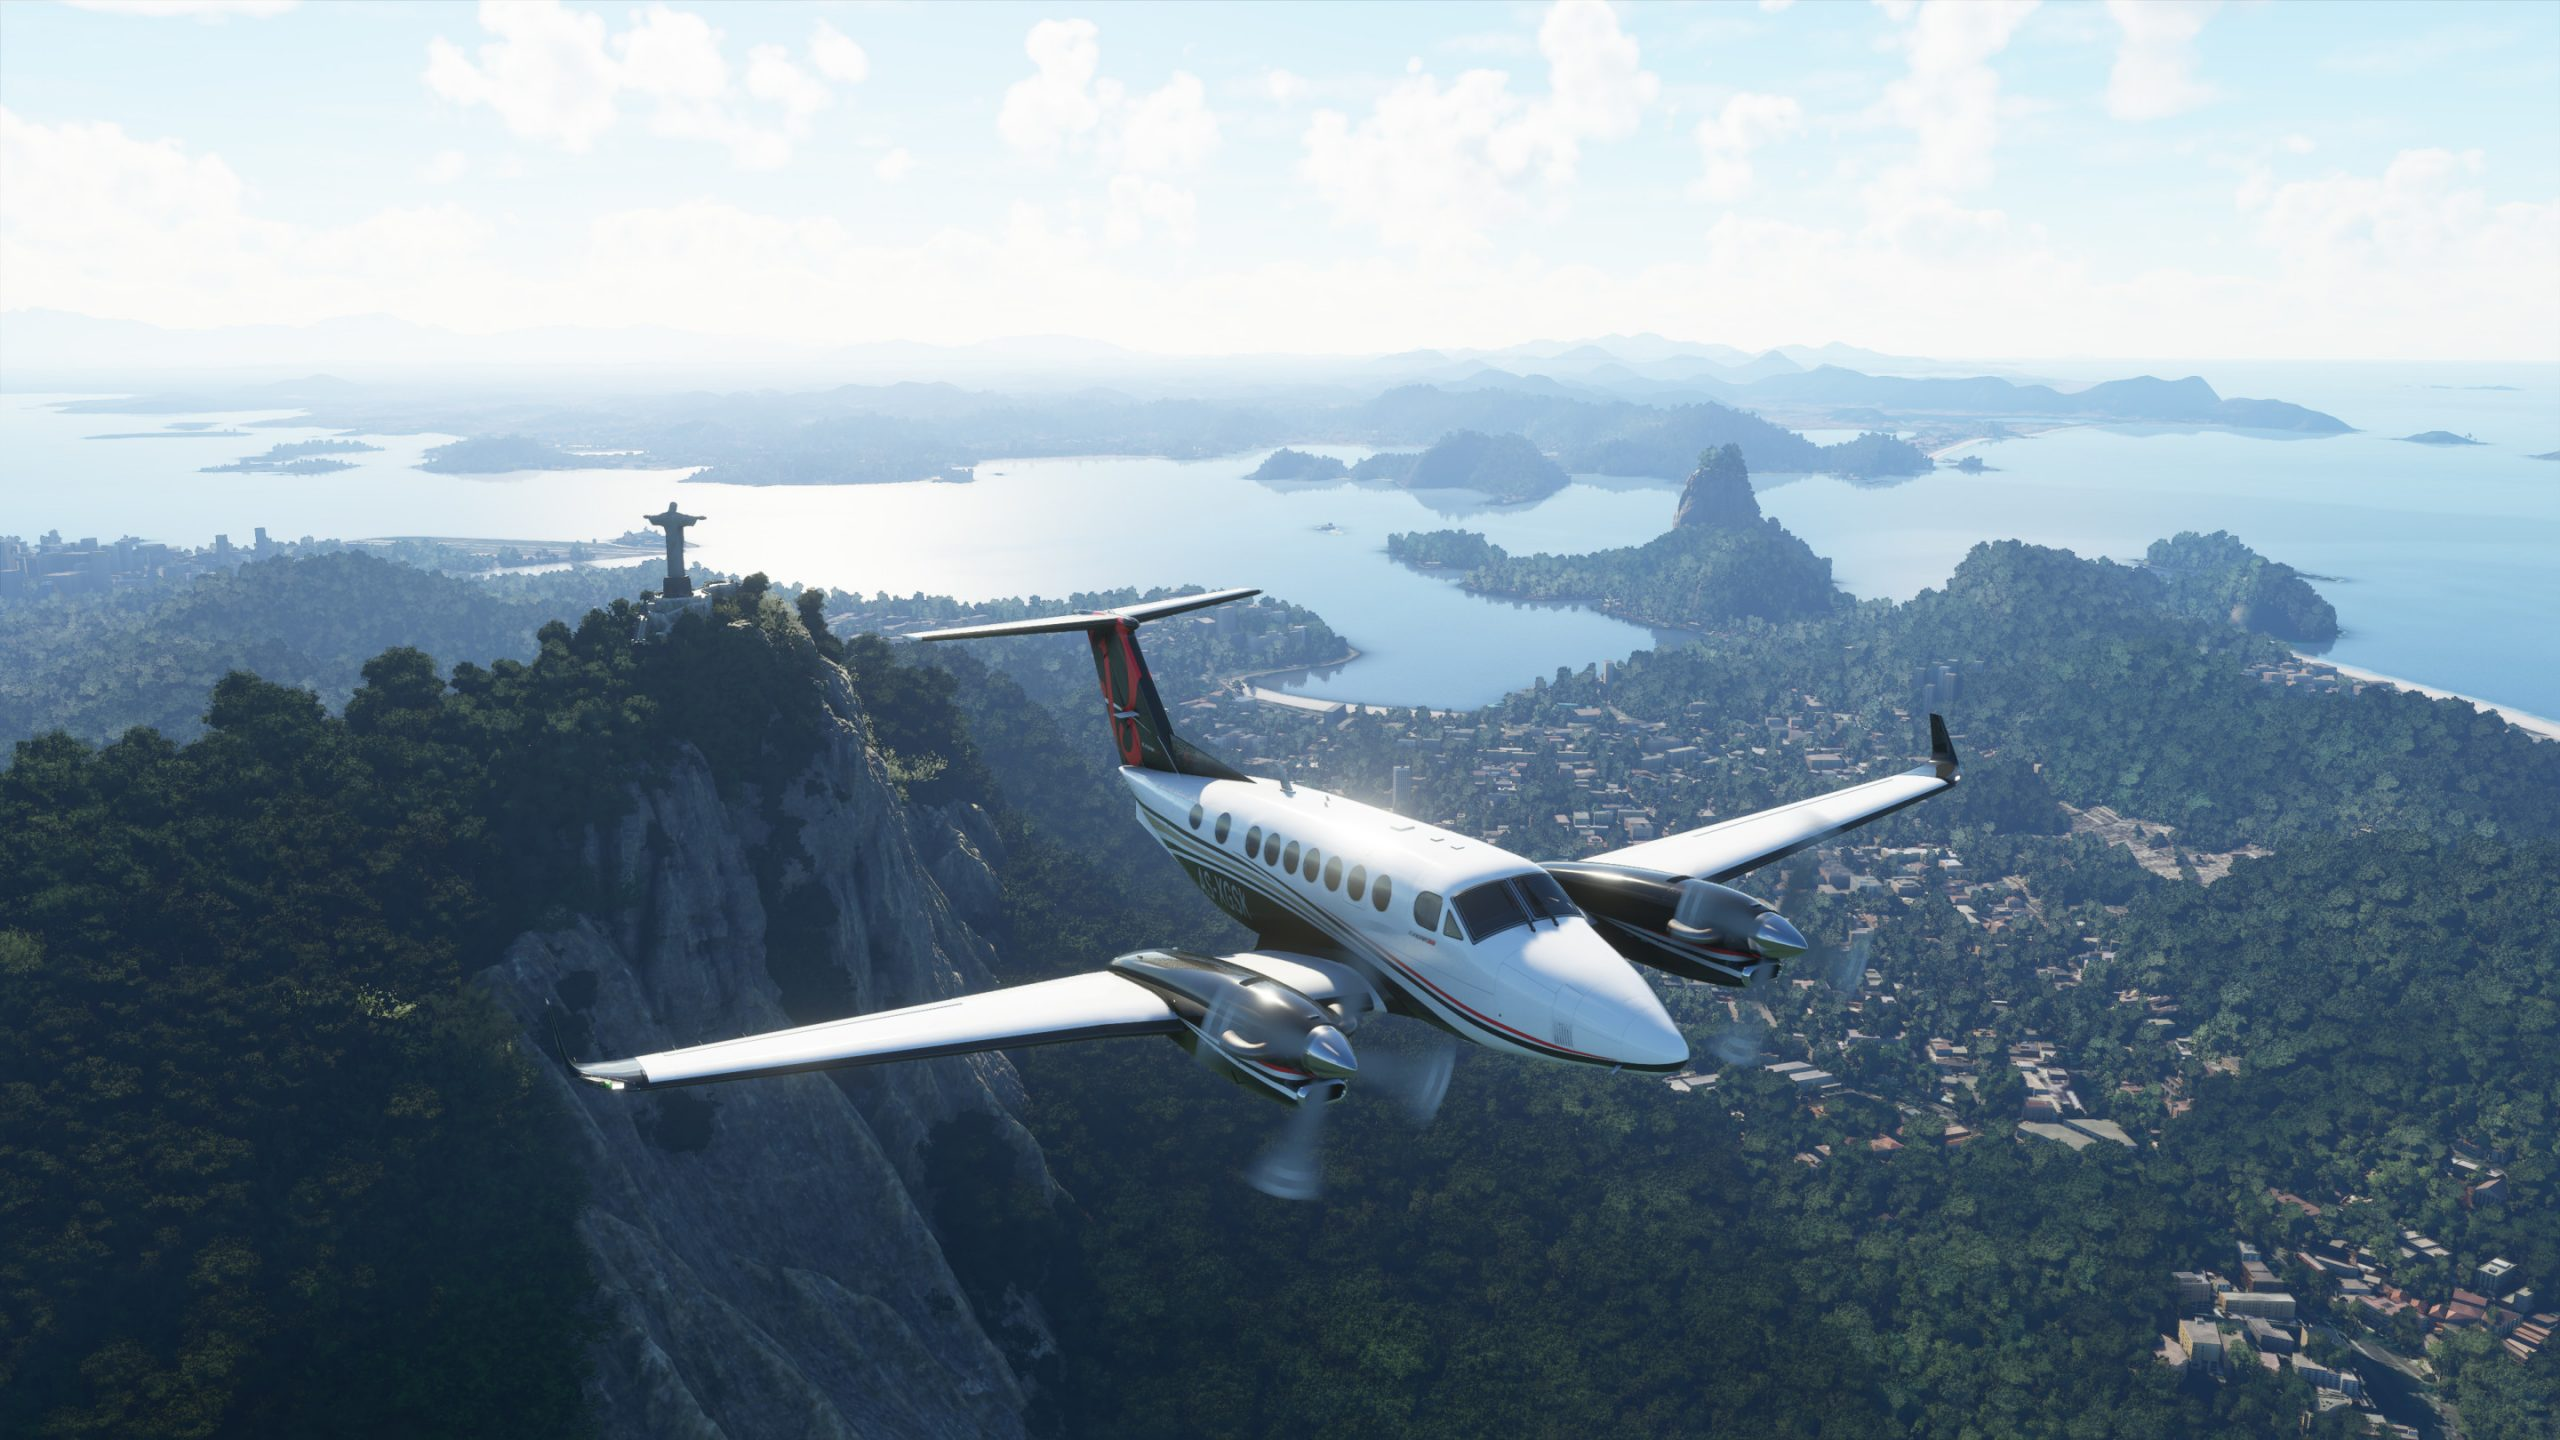 A screenshot of flight simulator 2020 showing a plane over the mountains of brazil